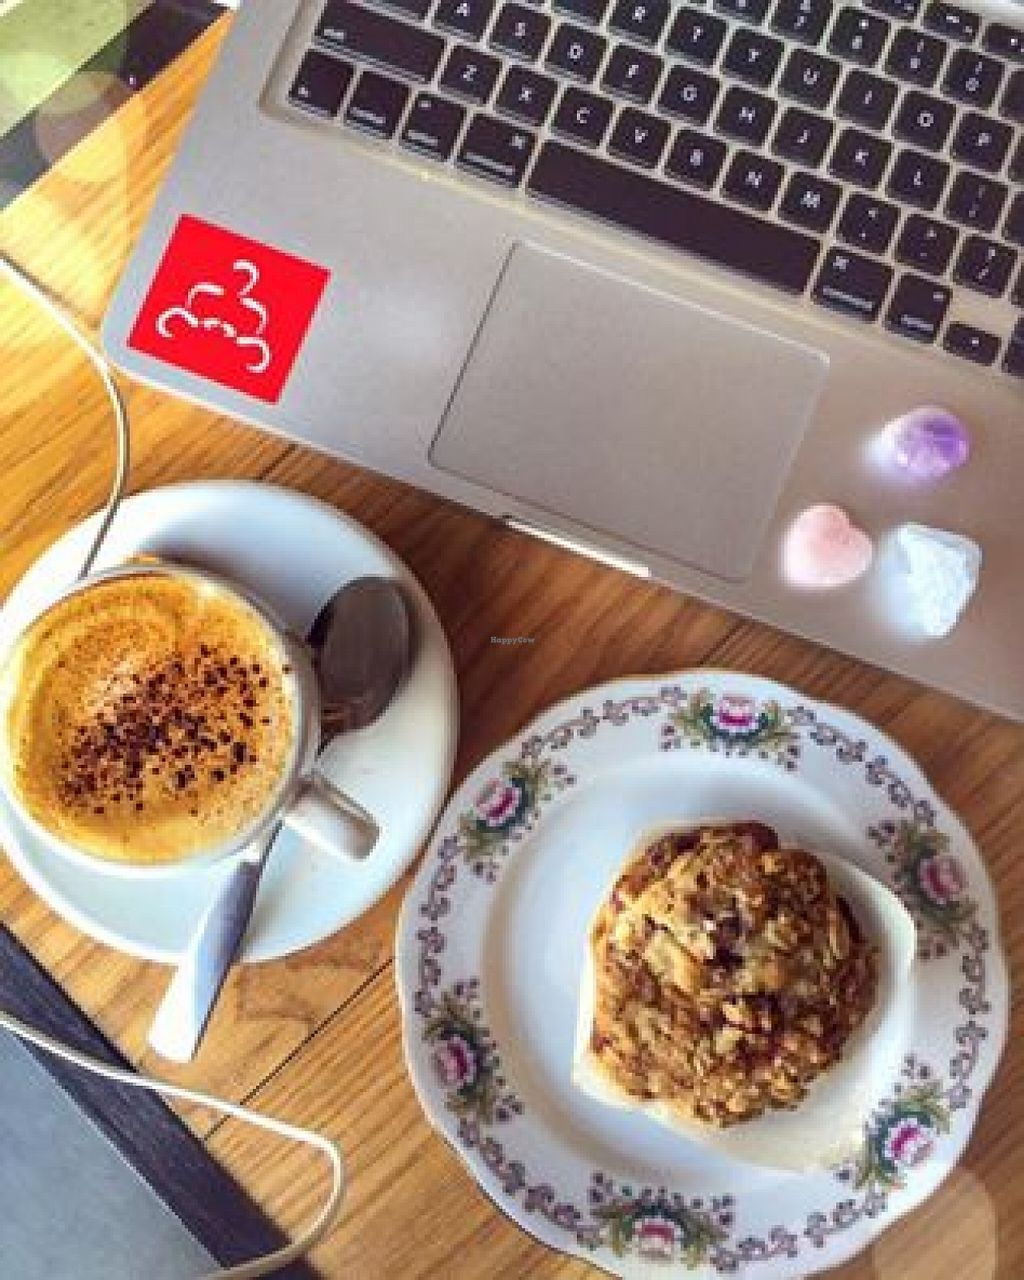 "Photo of Cafe Dei Campi  by <a href=""/members/profile/LauraVerbich"">LauraVerbich</a> <br/>Lovely selection of food! Here we have the cranberry muffin (so moist) and almond milk cappuccino <br/> April 5, 2016  - <a href='/contact/abuse/image/67269/142942'>Report</a>"